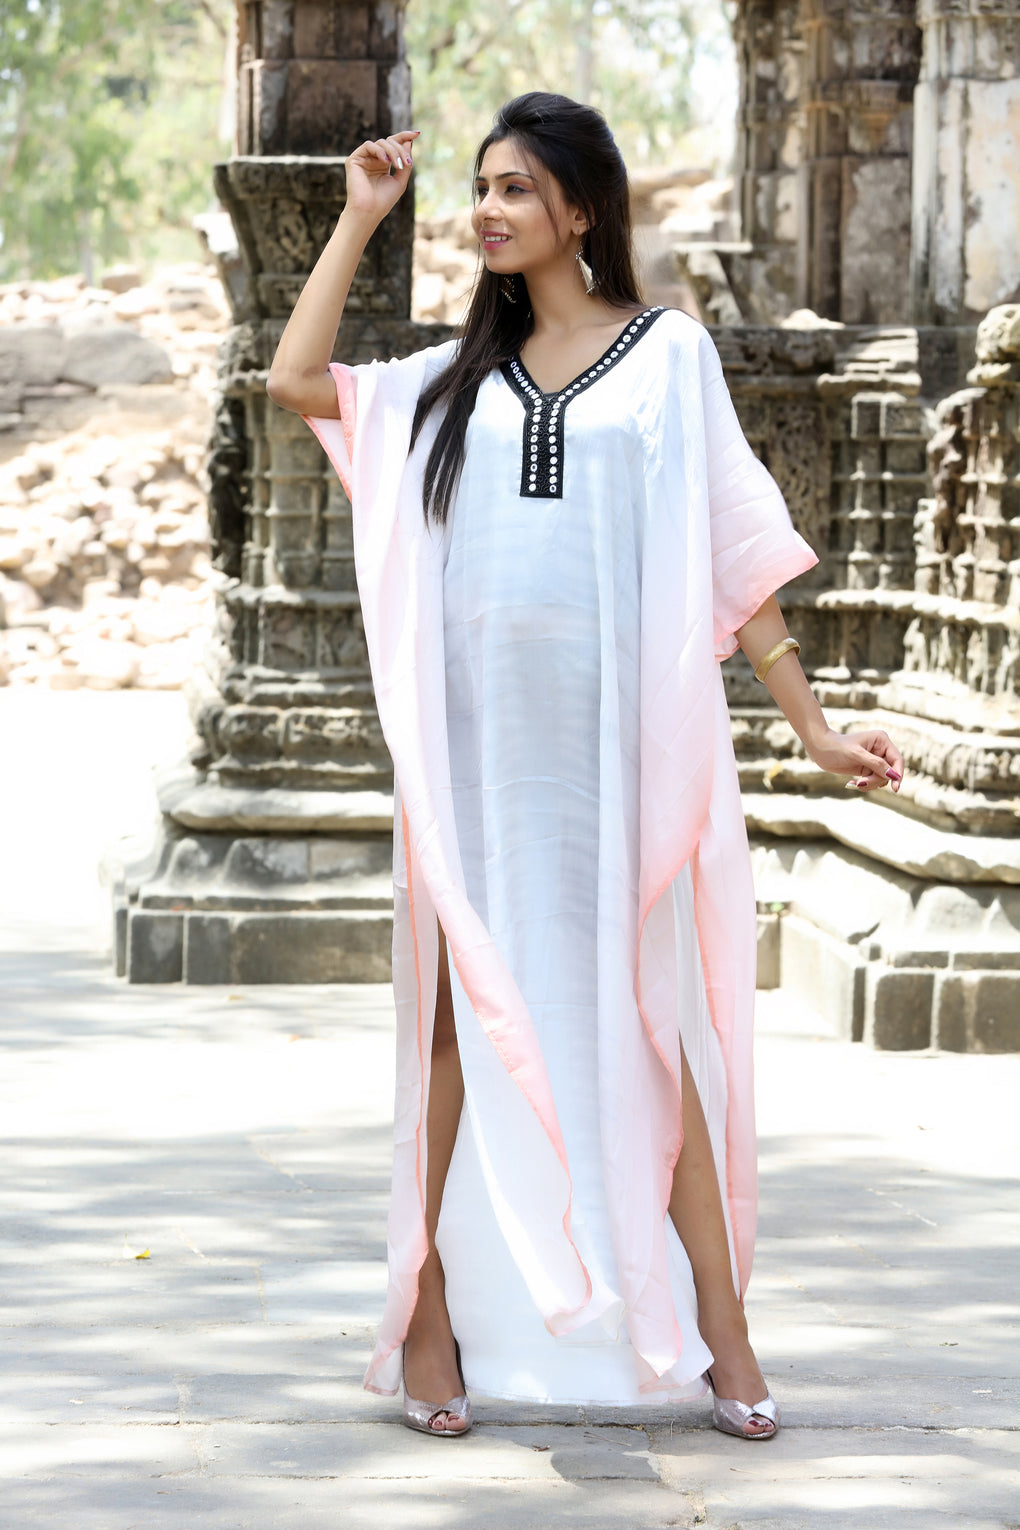 Heavily emblleshed maxi beach caftan long dressy/silk kaftan beach and resort wear hand made latest elegant kaftan fashion plus woman 129 - Silk kaftan